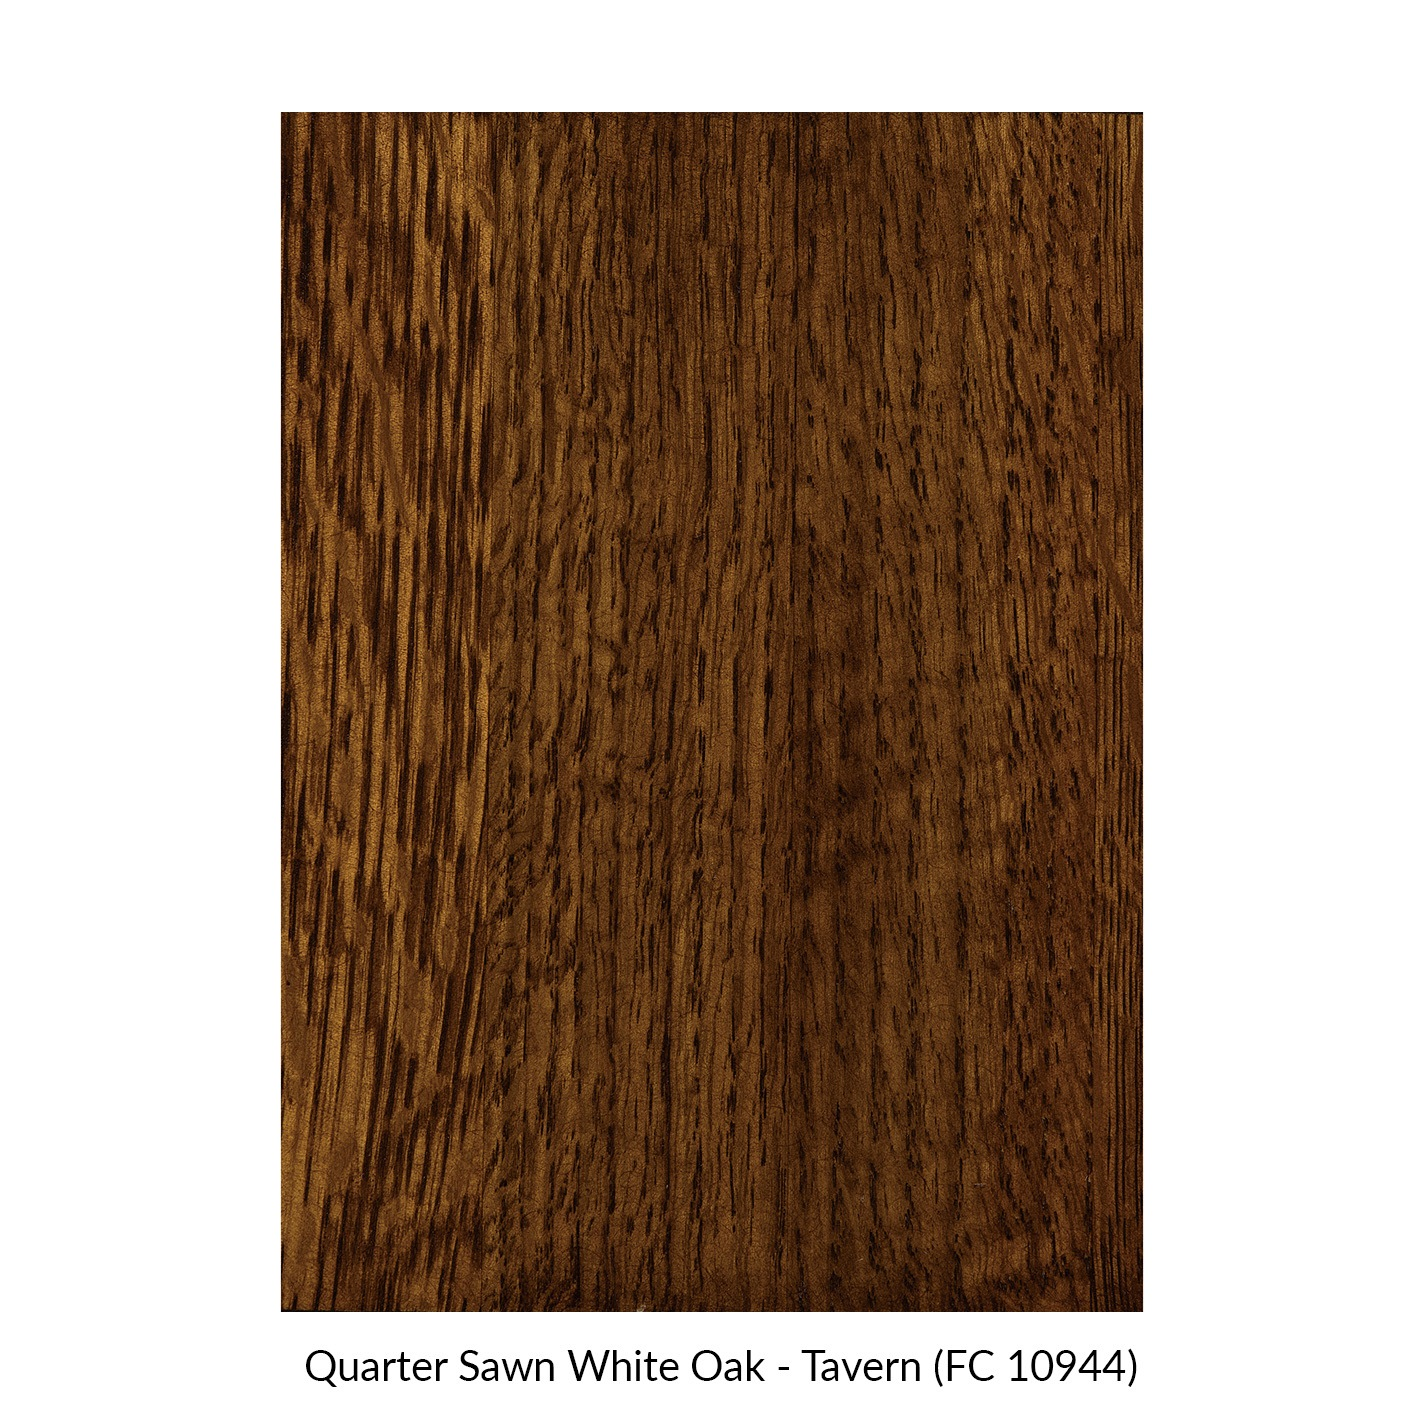 spectrum-quarter-sawn-white-oak-tavern-fc-10944.jpg